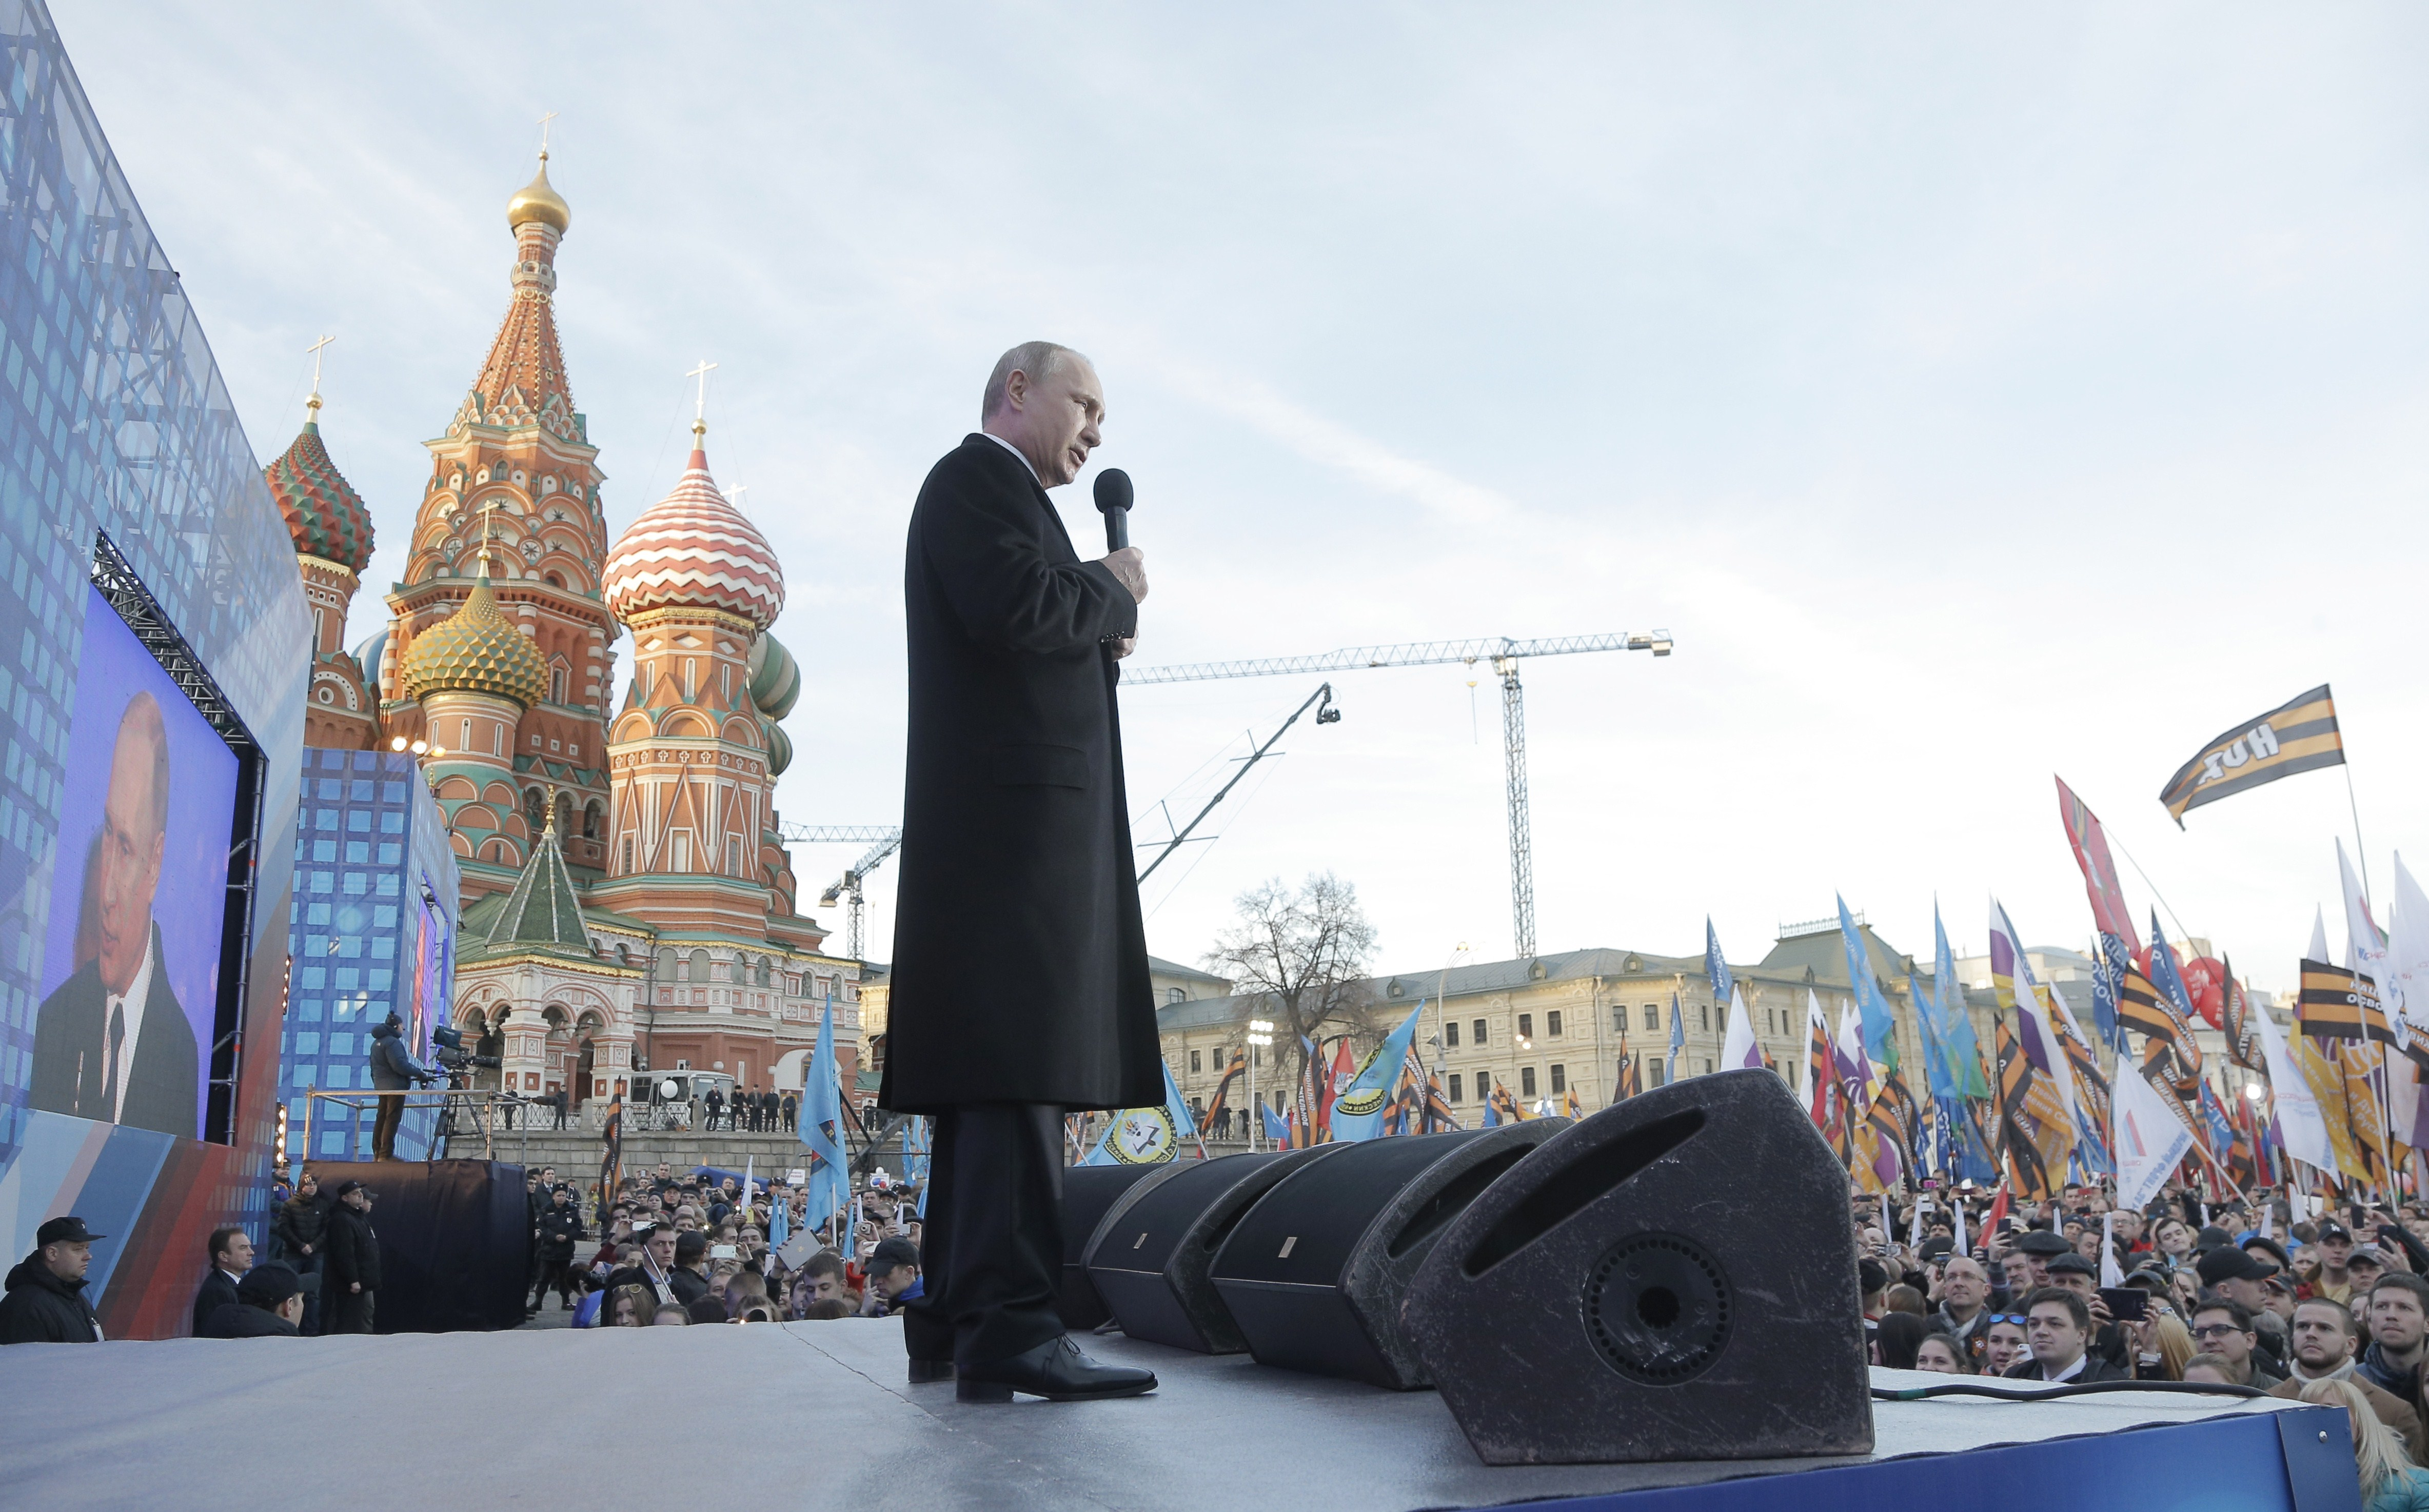 Russian President Vladimir Putin gives a speech during a rally and a concert in central Moscow on March 18, 2015, to mark one year since he signed off on the annexation of Crimea in a epochal shift that ruptured ties with Ukraine and the West. MAXIM SHIPENKOV/AFP/Getty Images